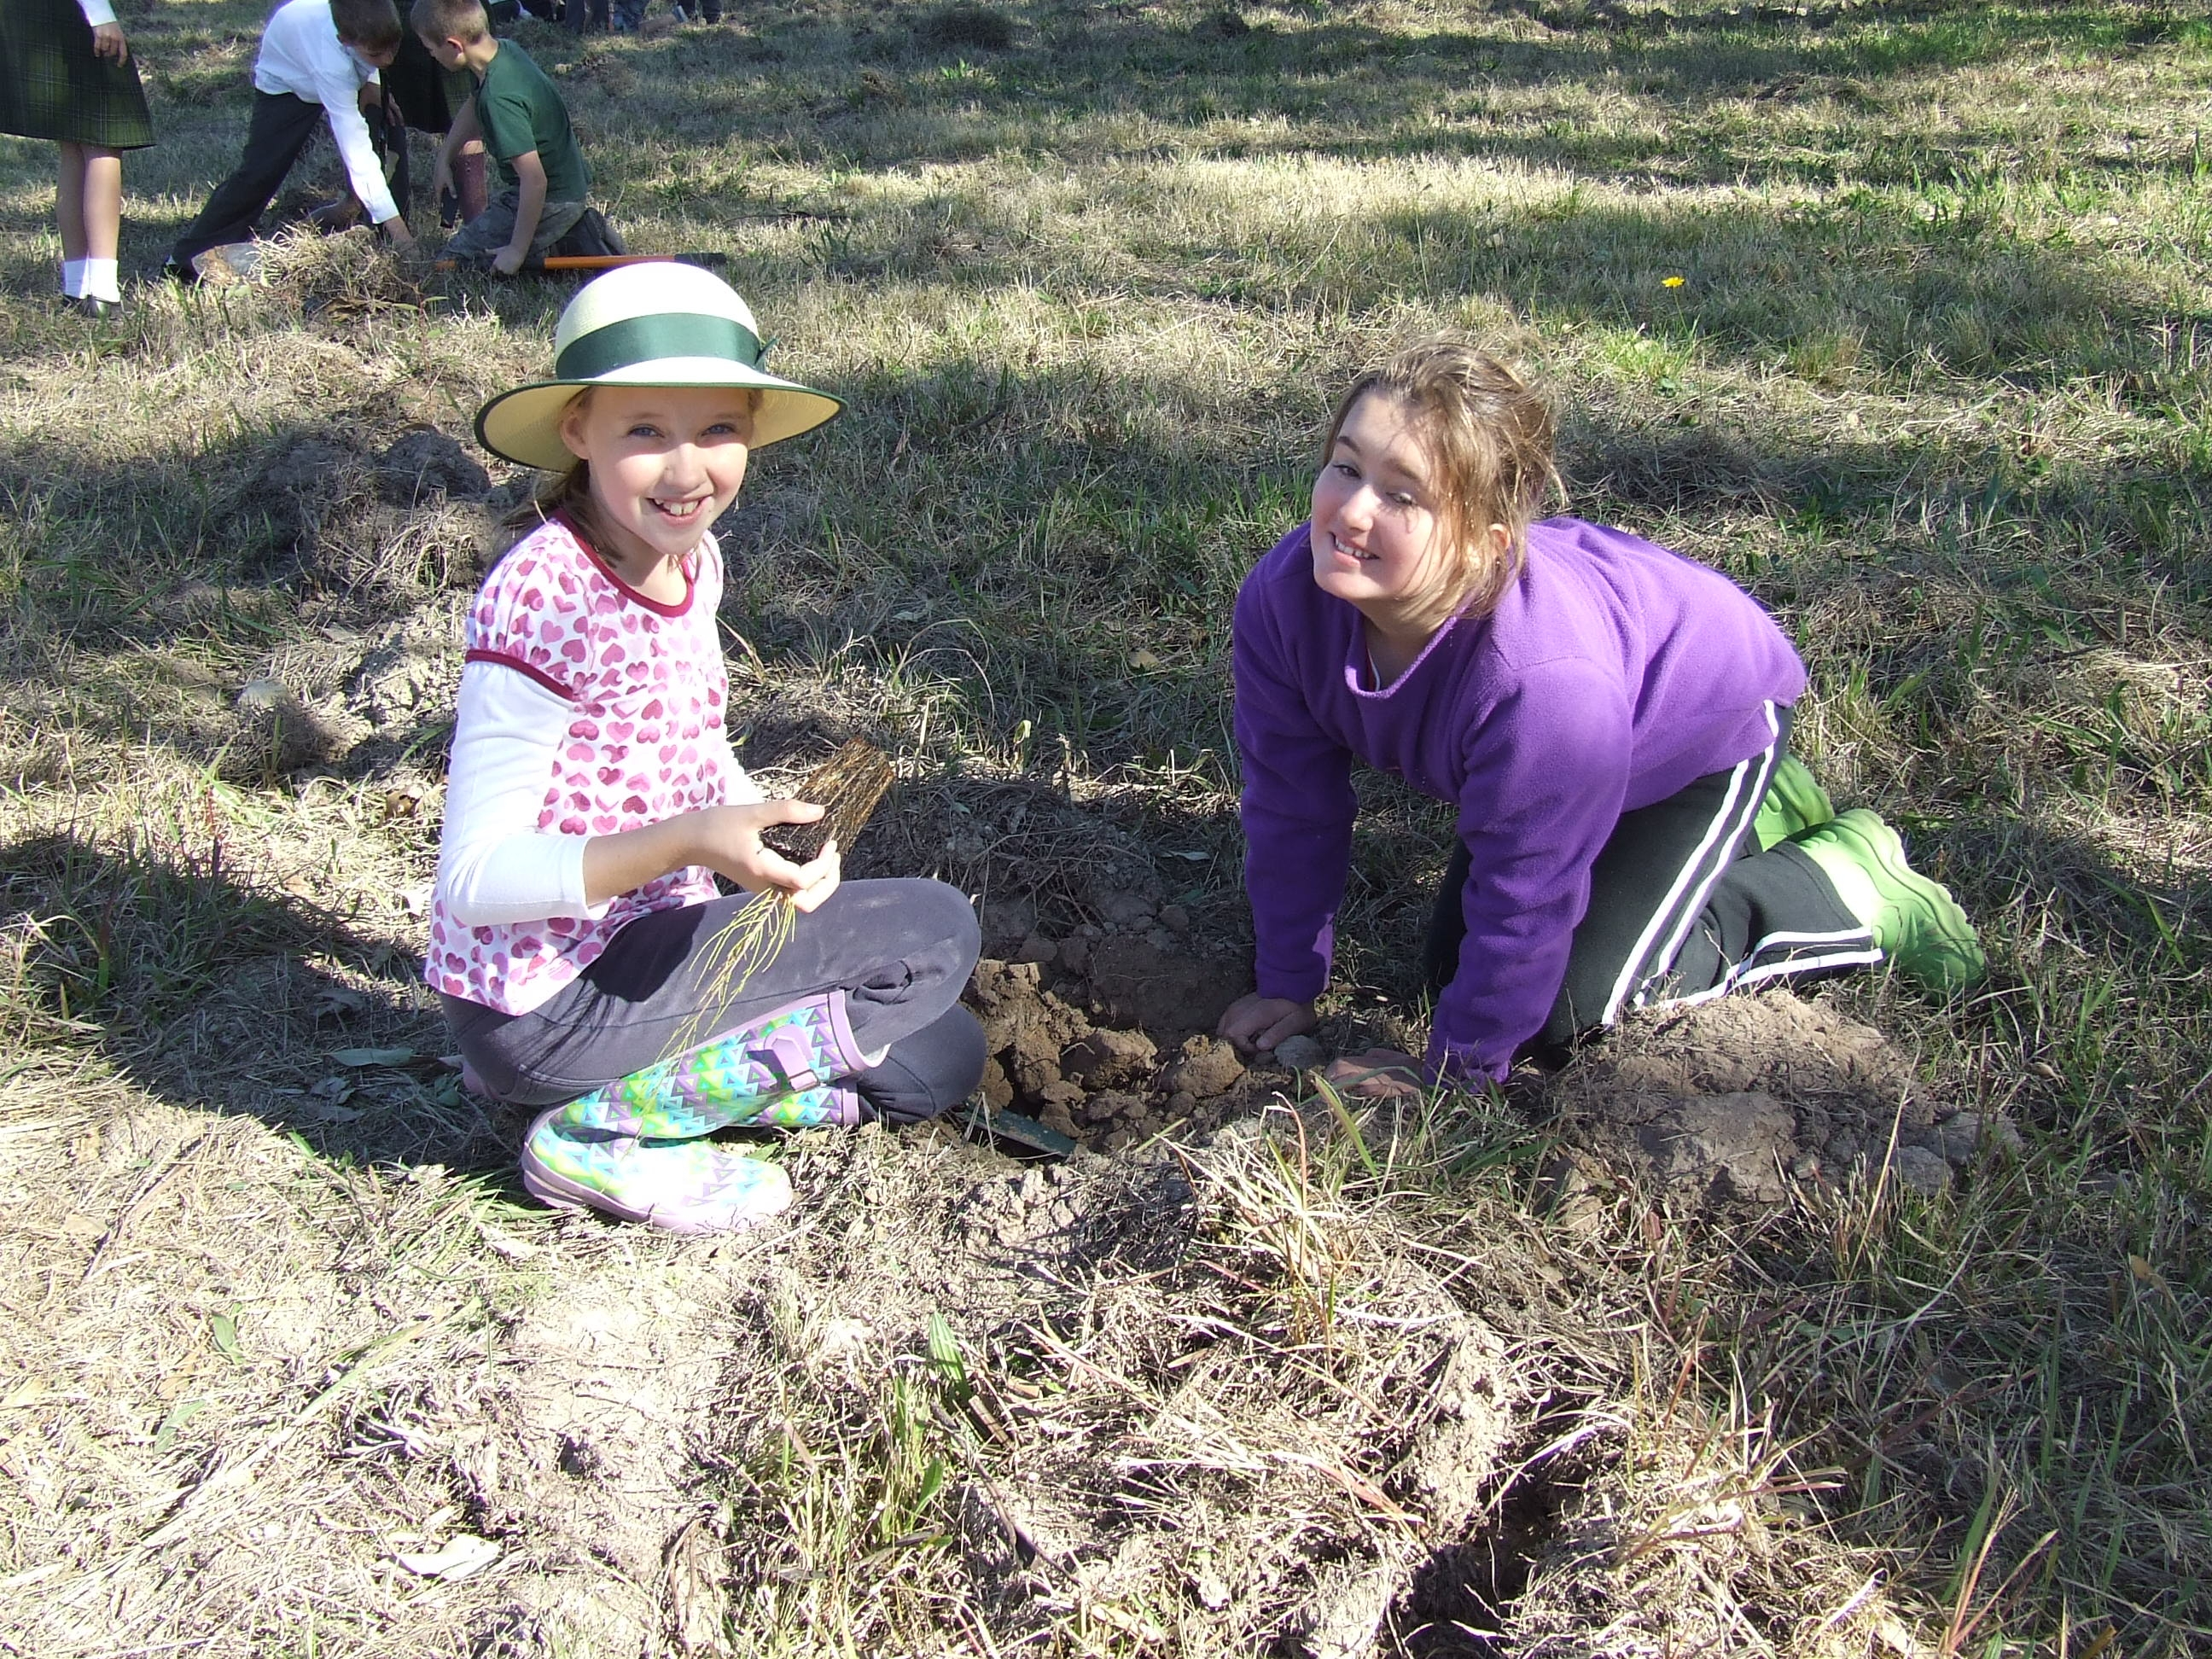 Year 5 girls happily planting trees